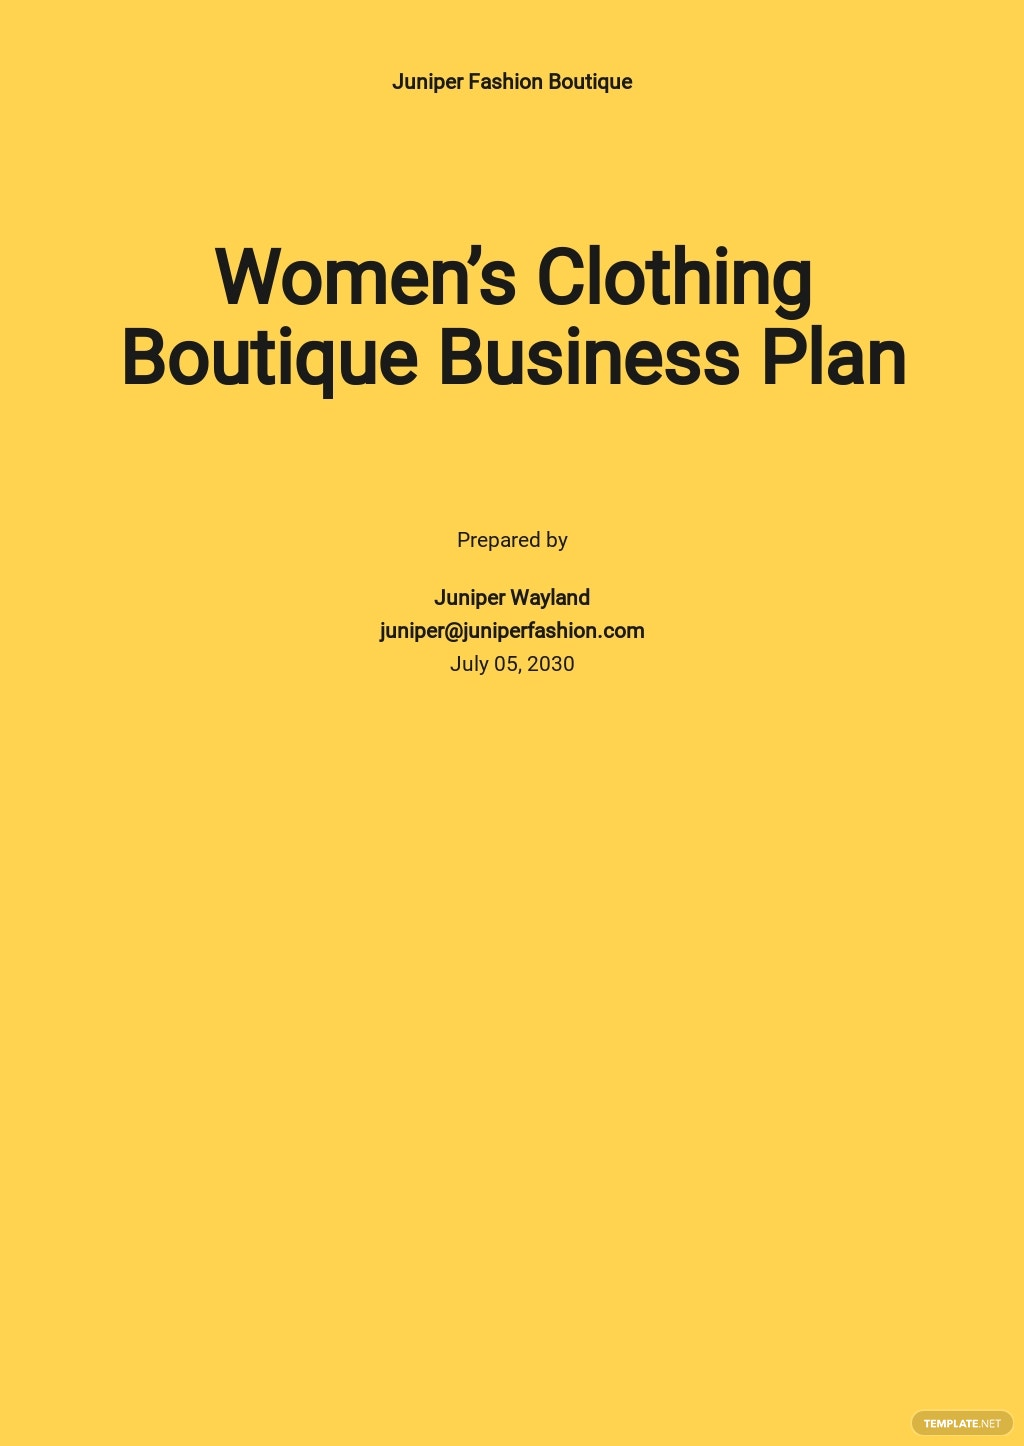 Women's Clothing Boutique Business Plan Template